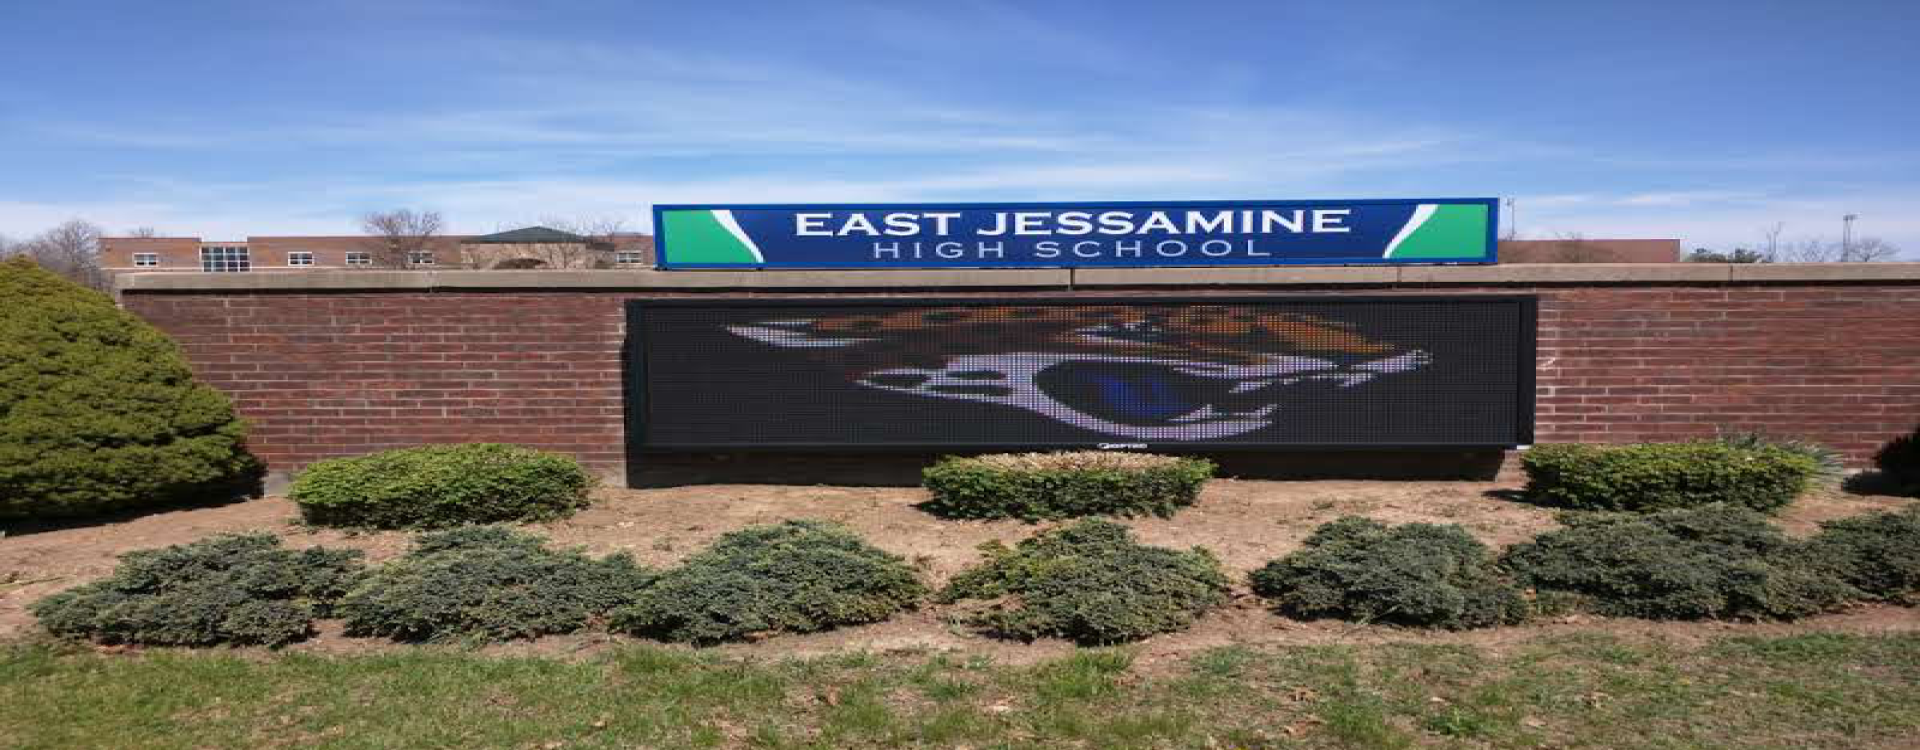 EJHS MARQUEE